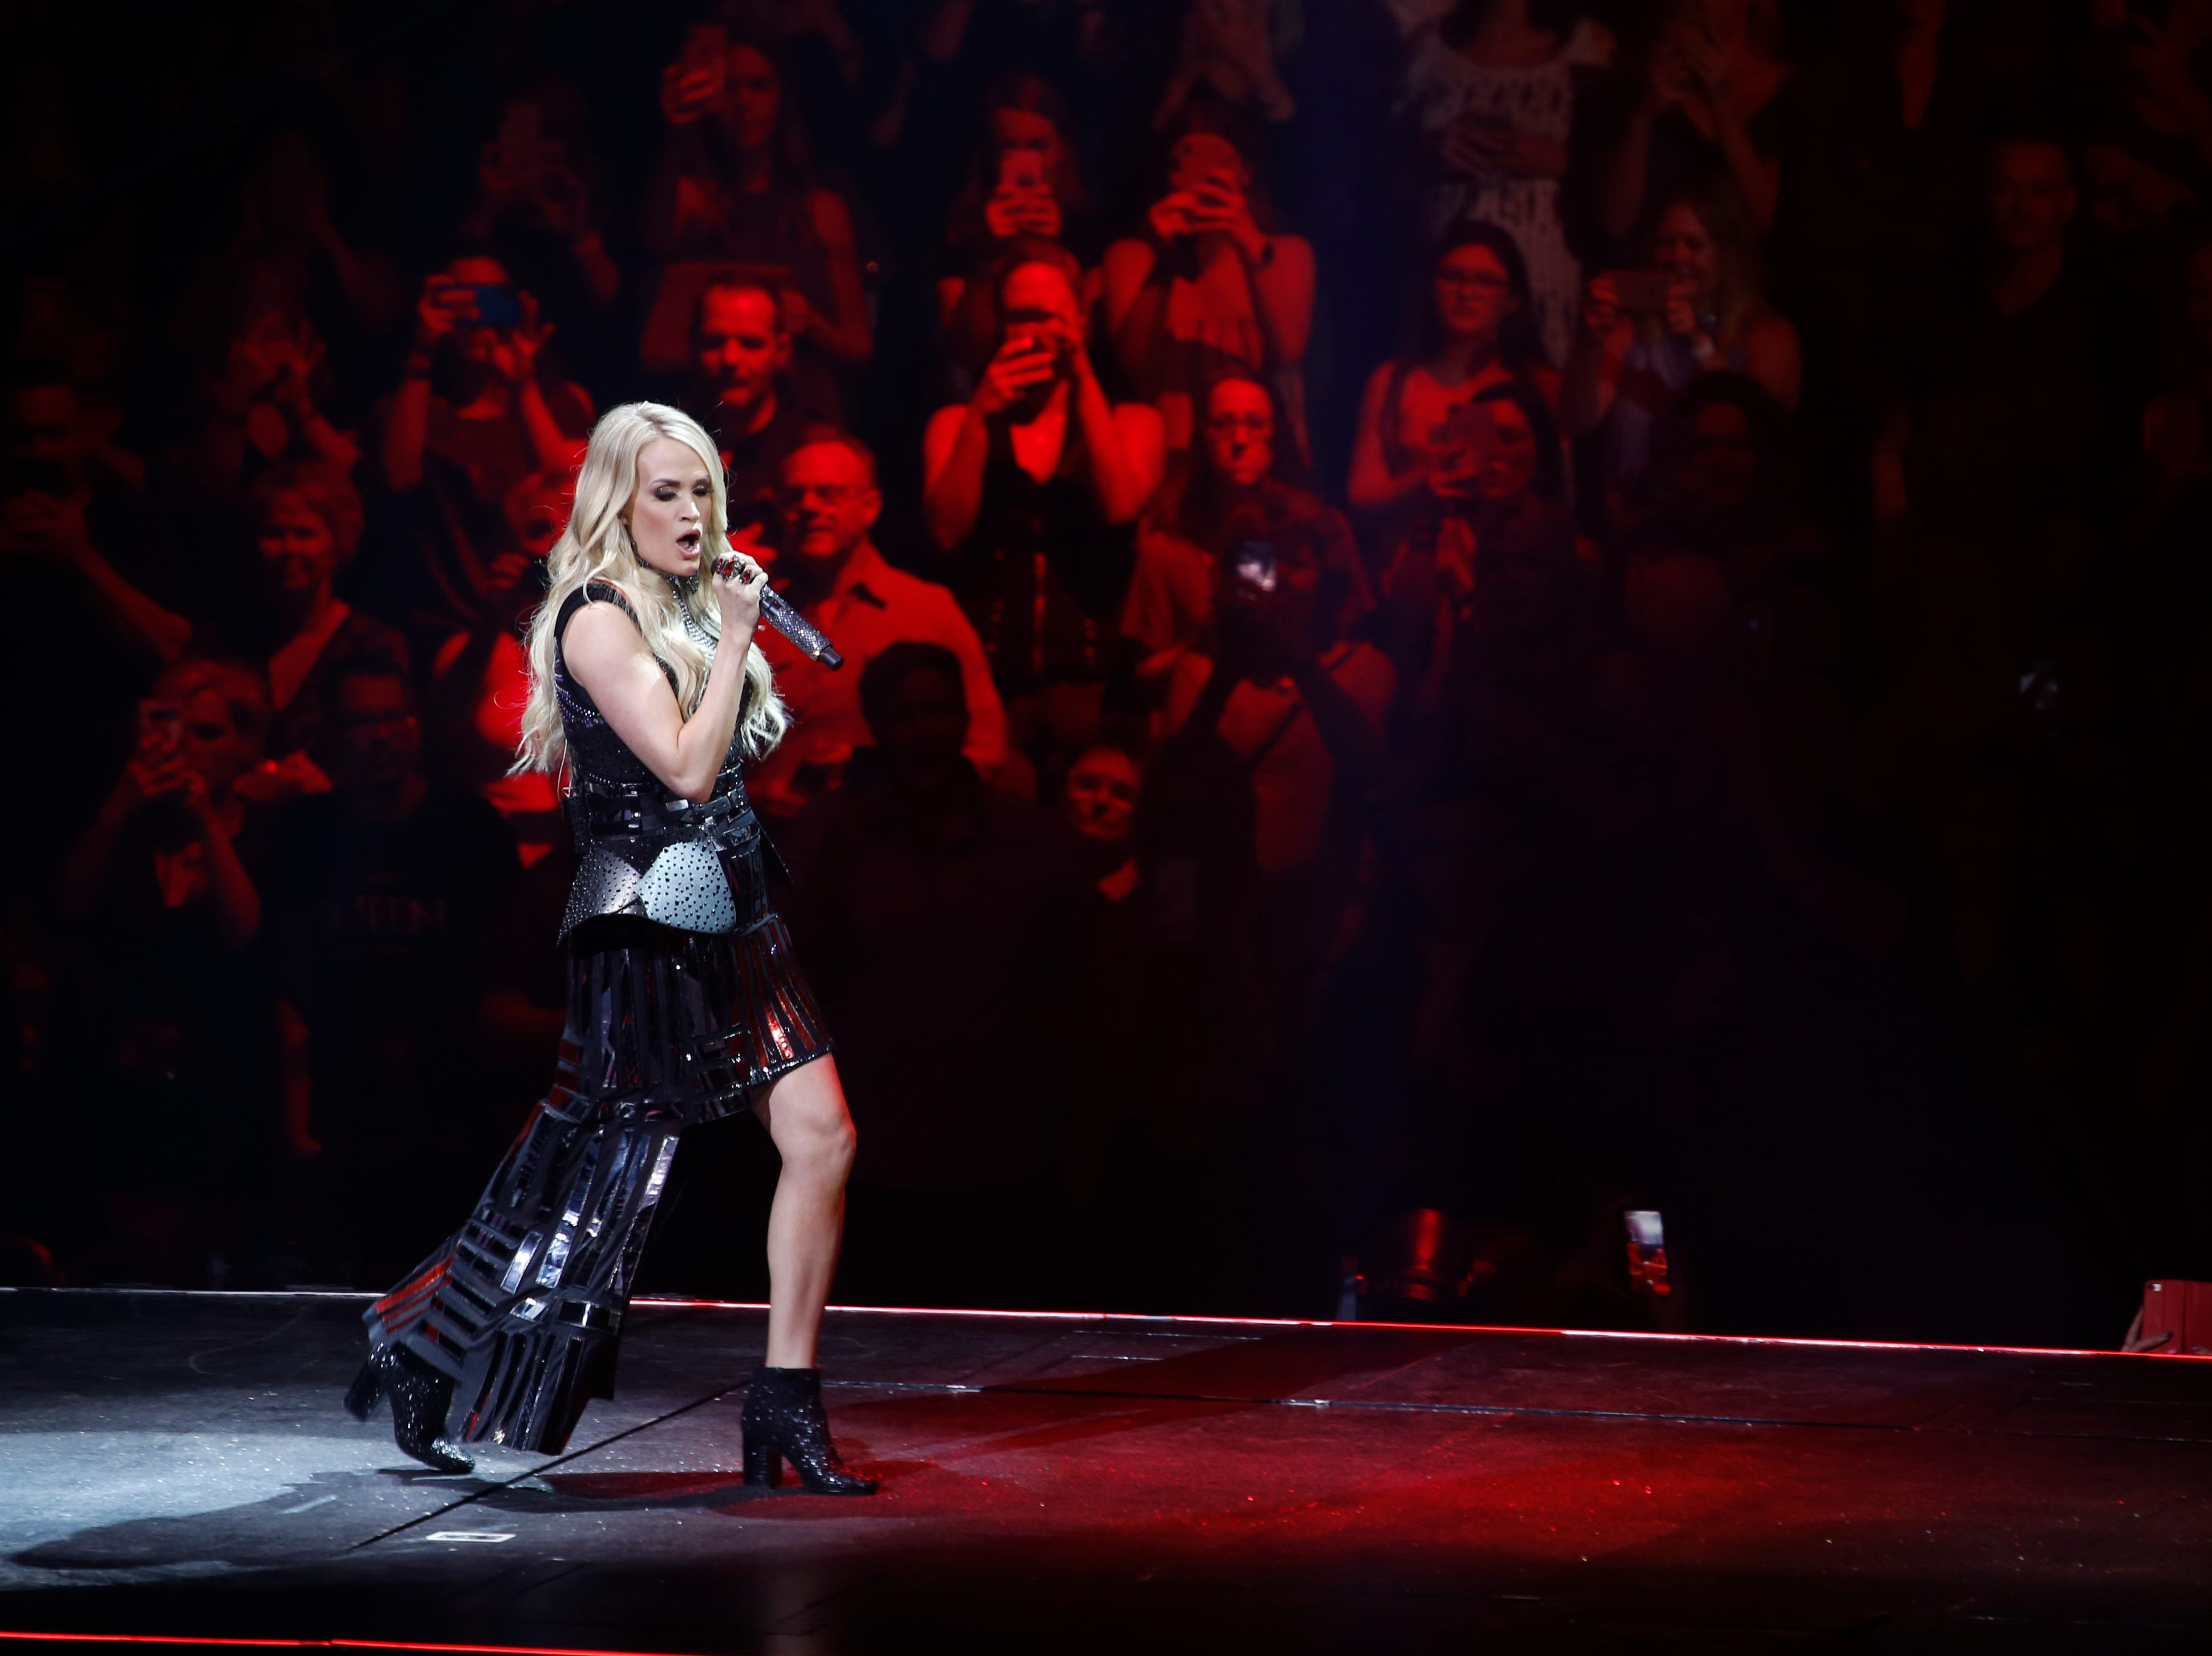 Carrie Underwood performs during her Cry Pretty Tour at Talking Stick Resort Arena in Phoenix on May 9, 2019.